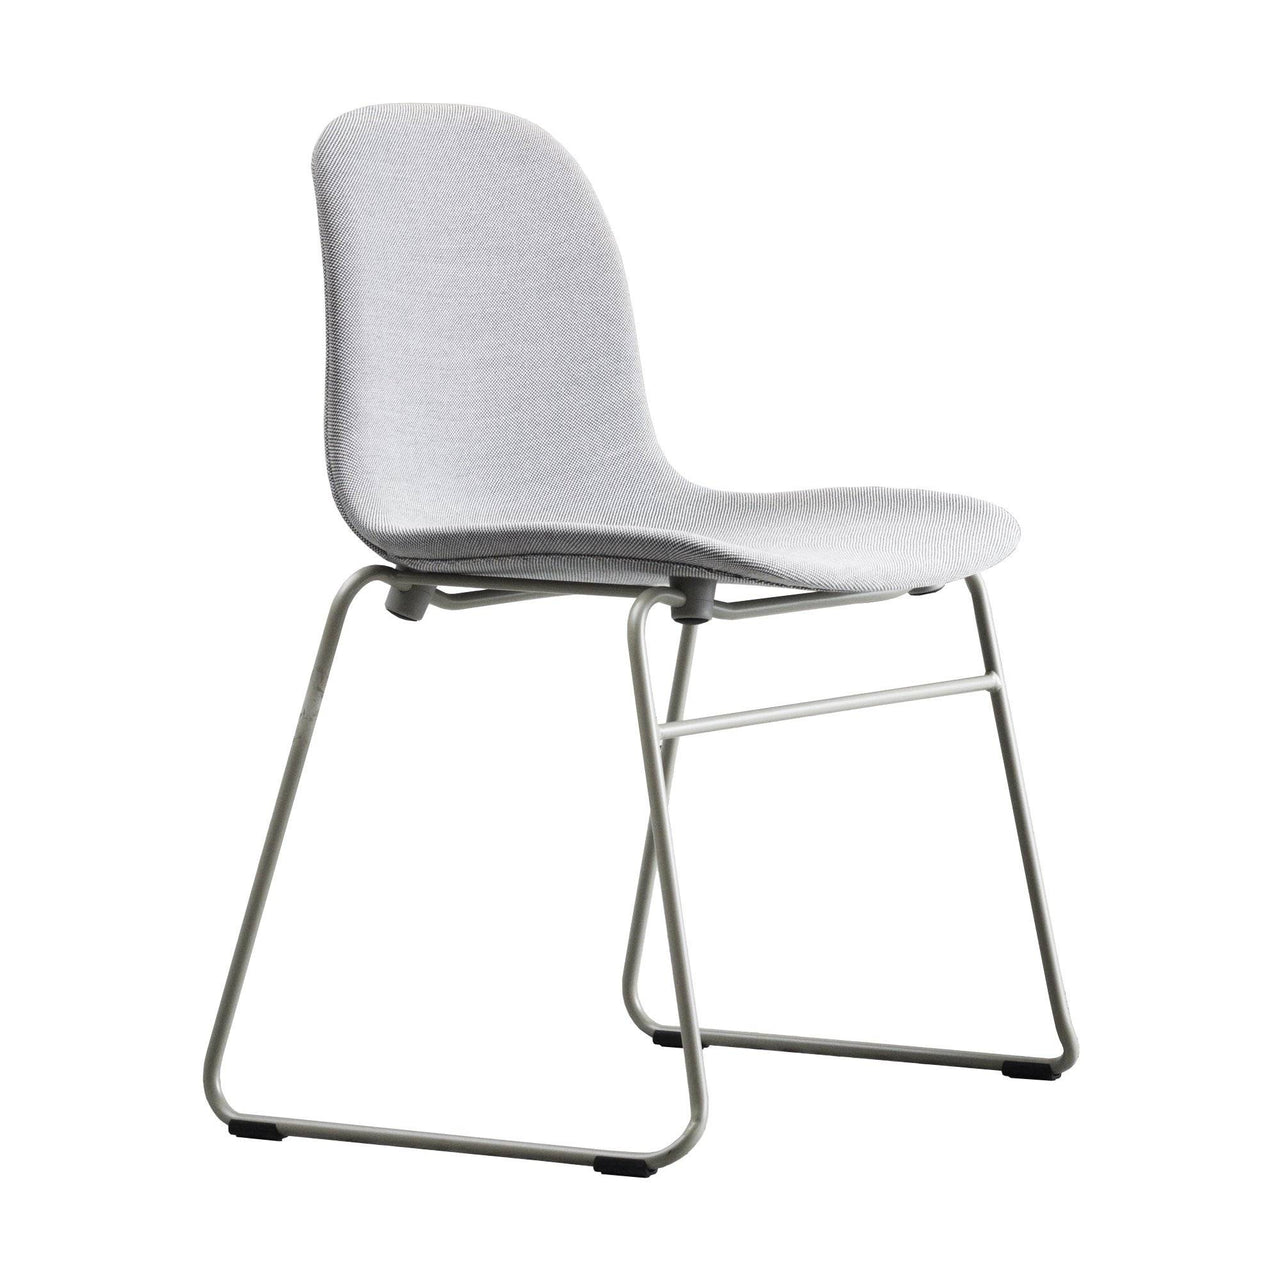 Form Stacking Chair: Chrome Upholstered